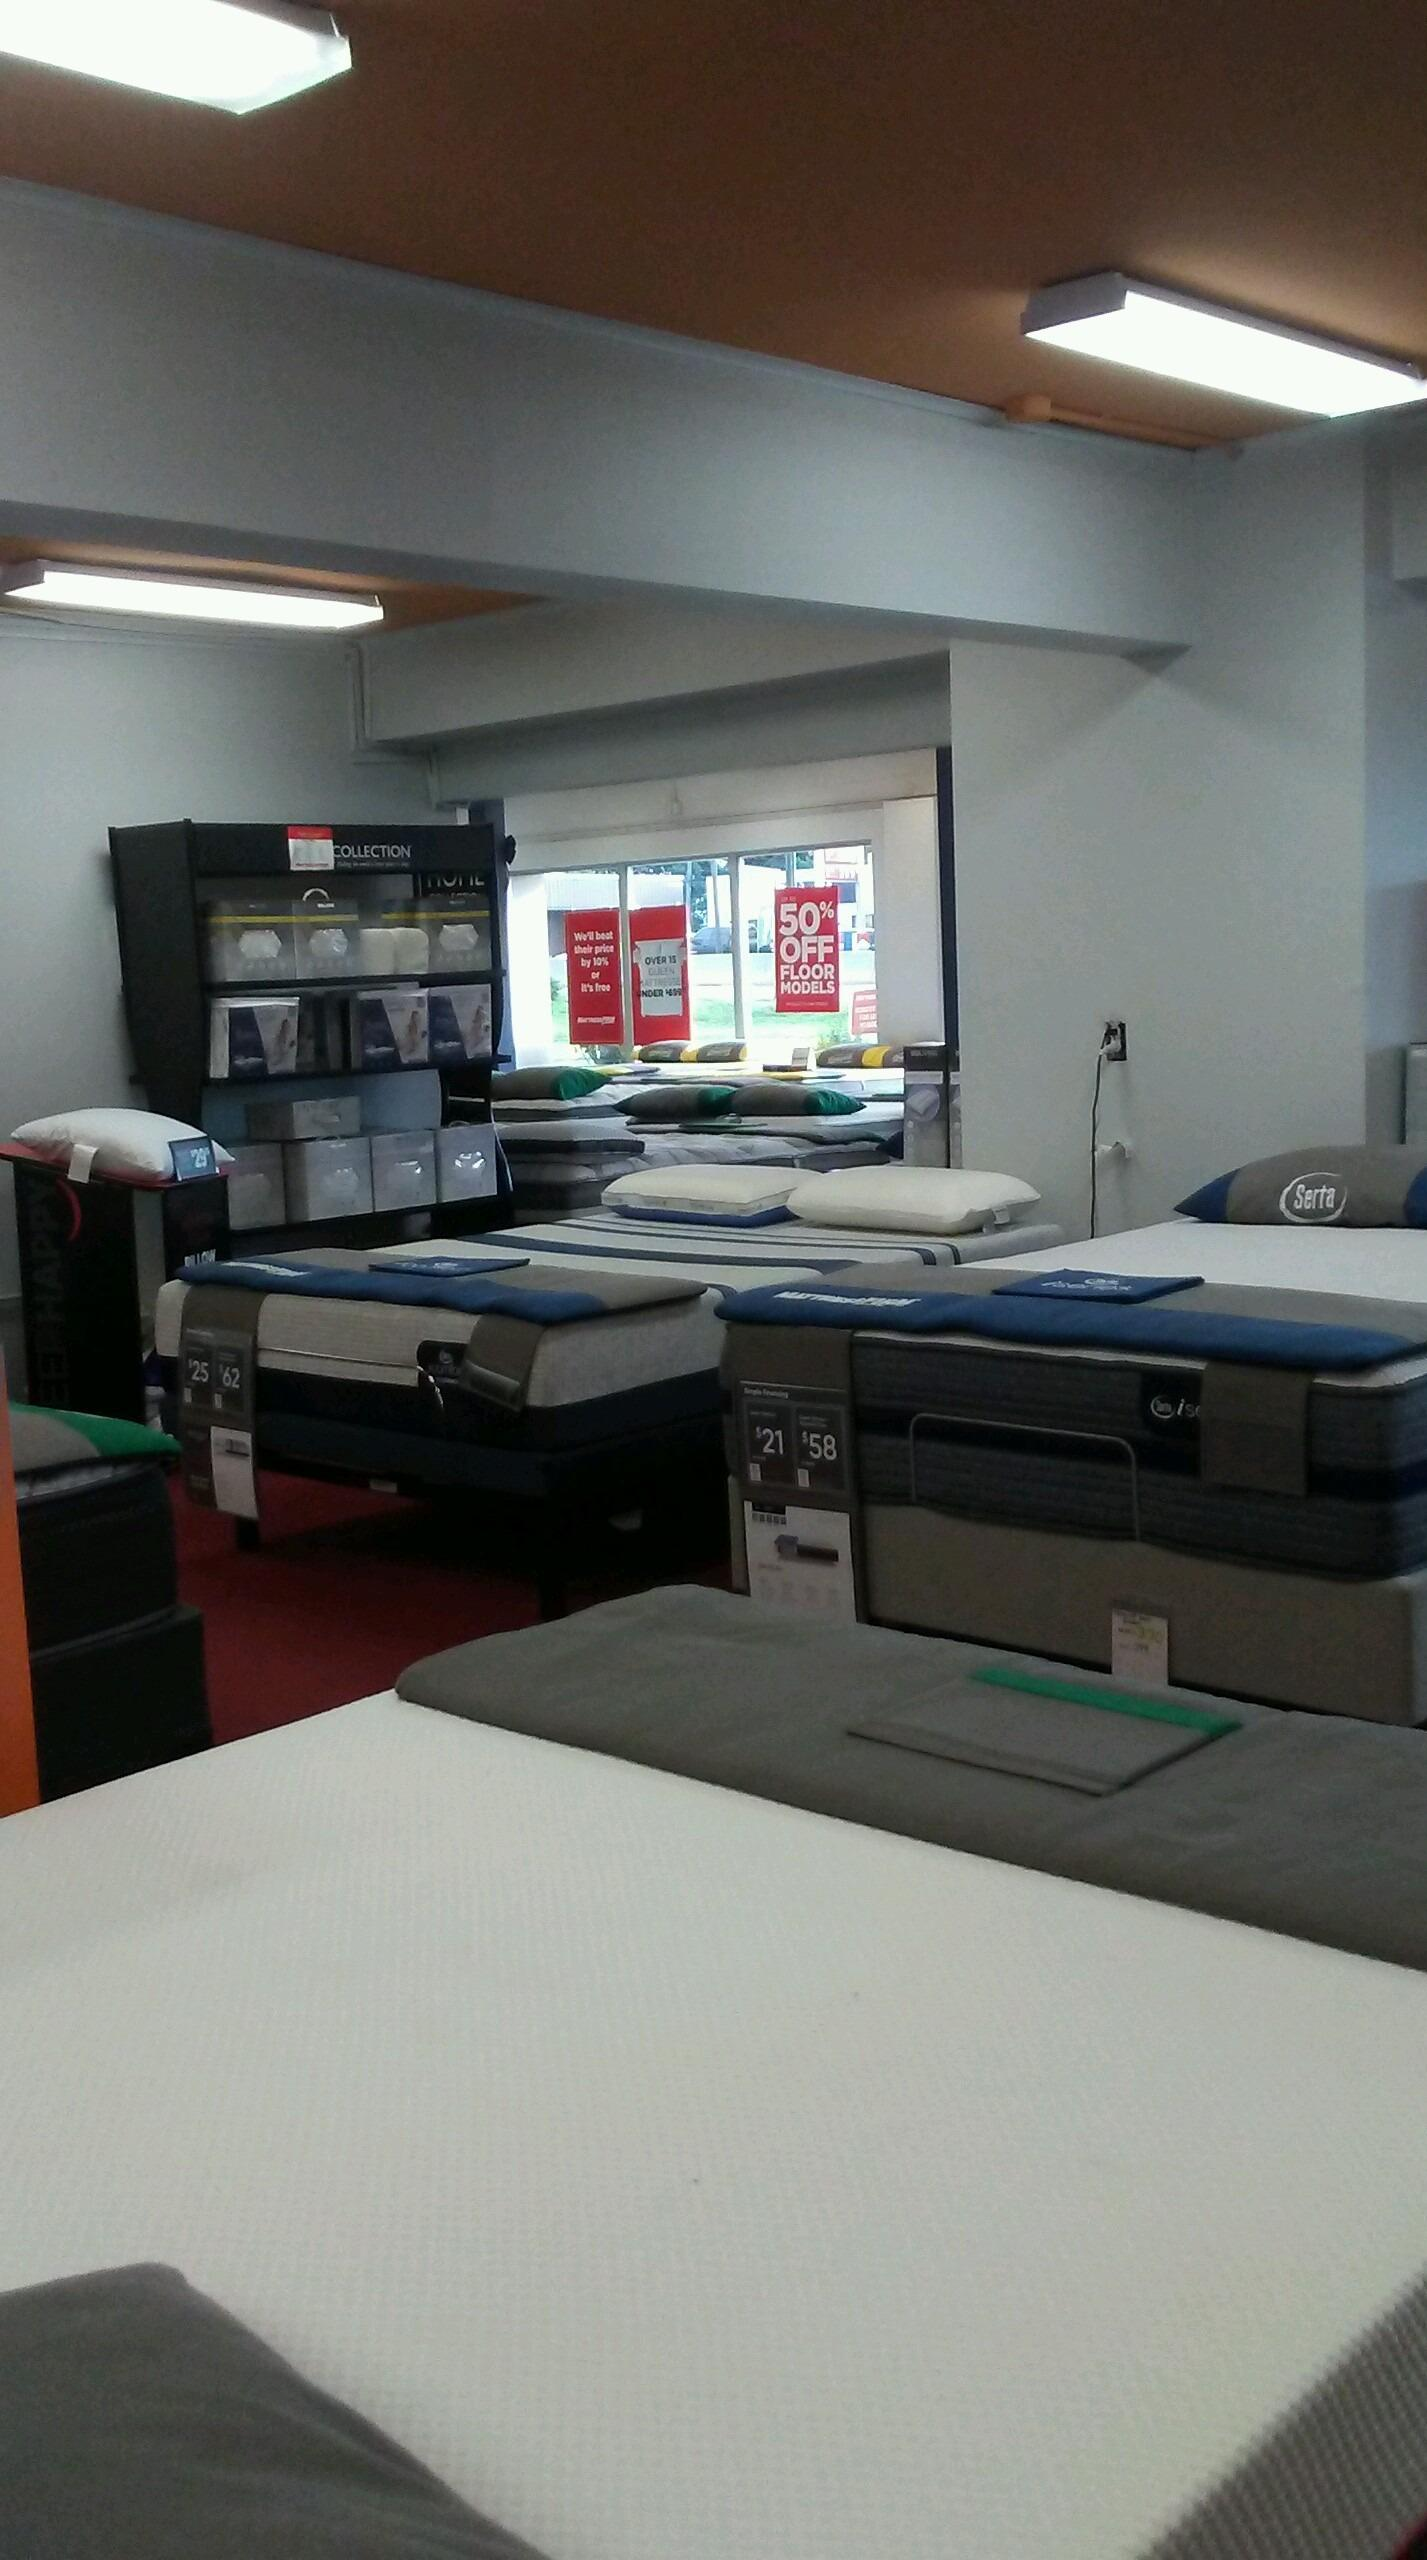 Mattress Firm Whitehall South image 4